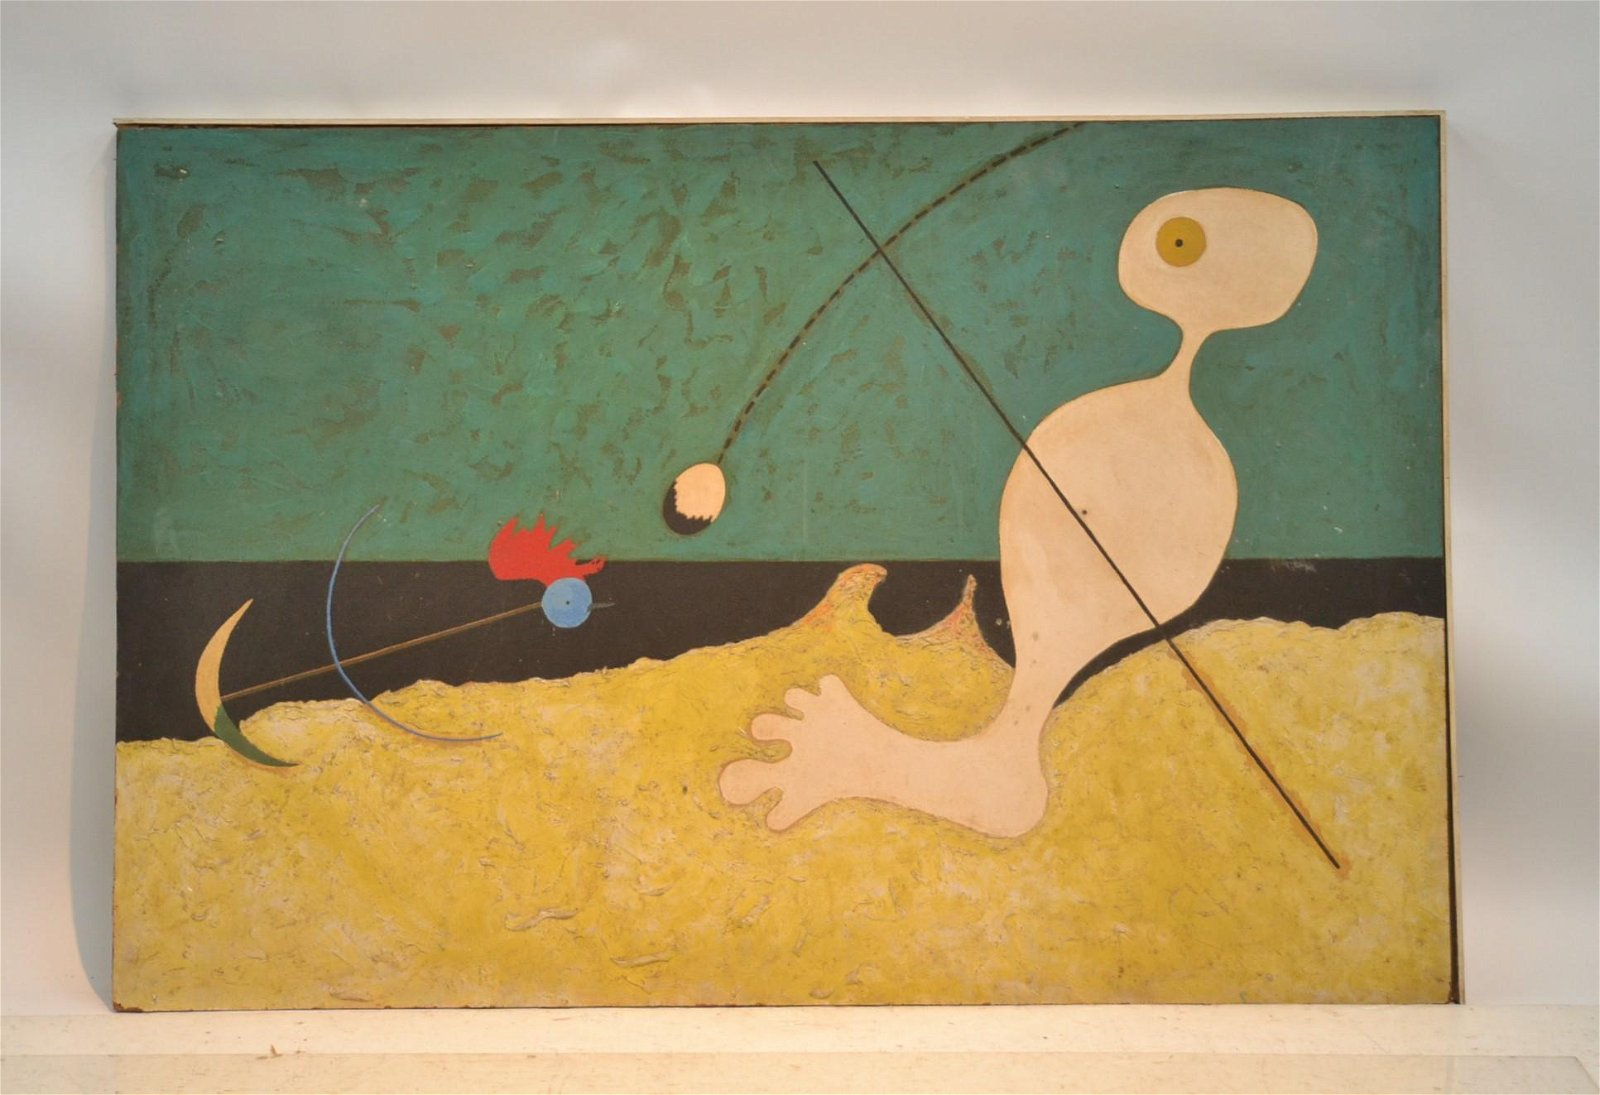 AFTER JOAN MIRO PAINTING PERSON THROWING STONE AT BIRD